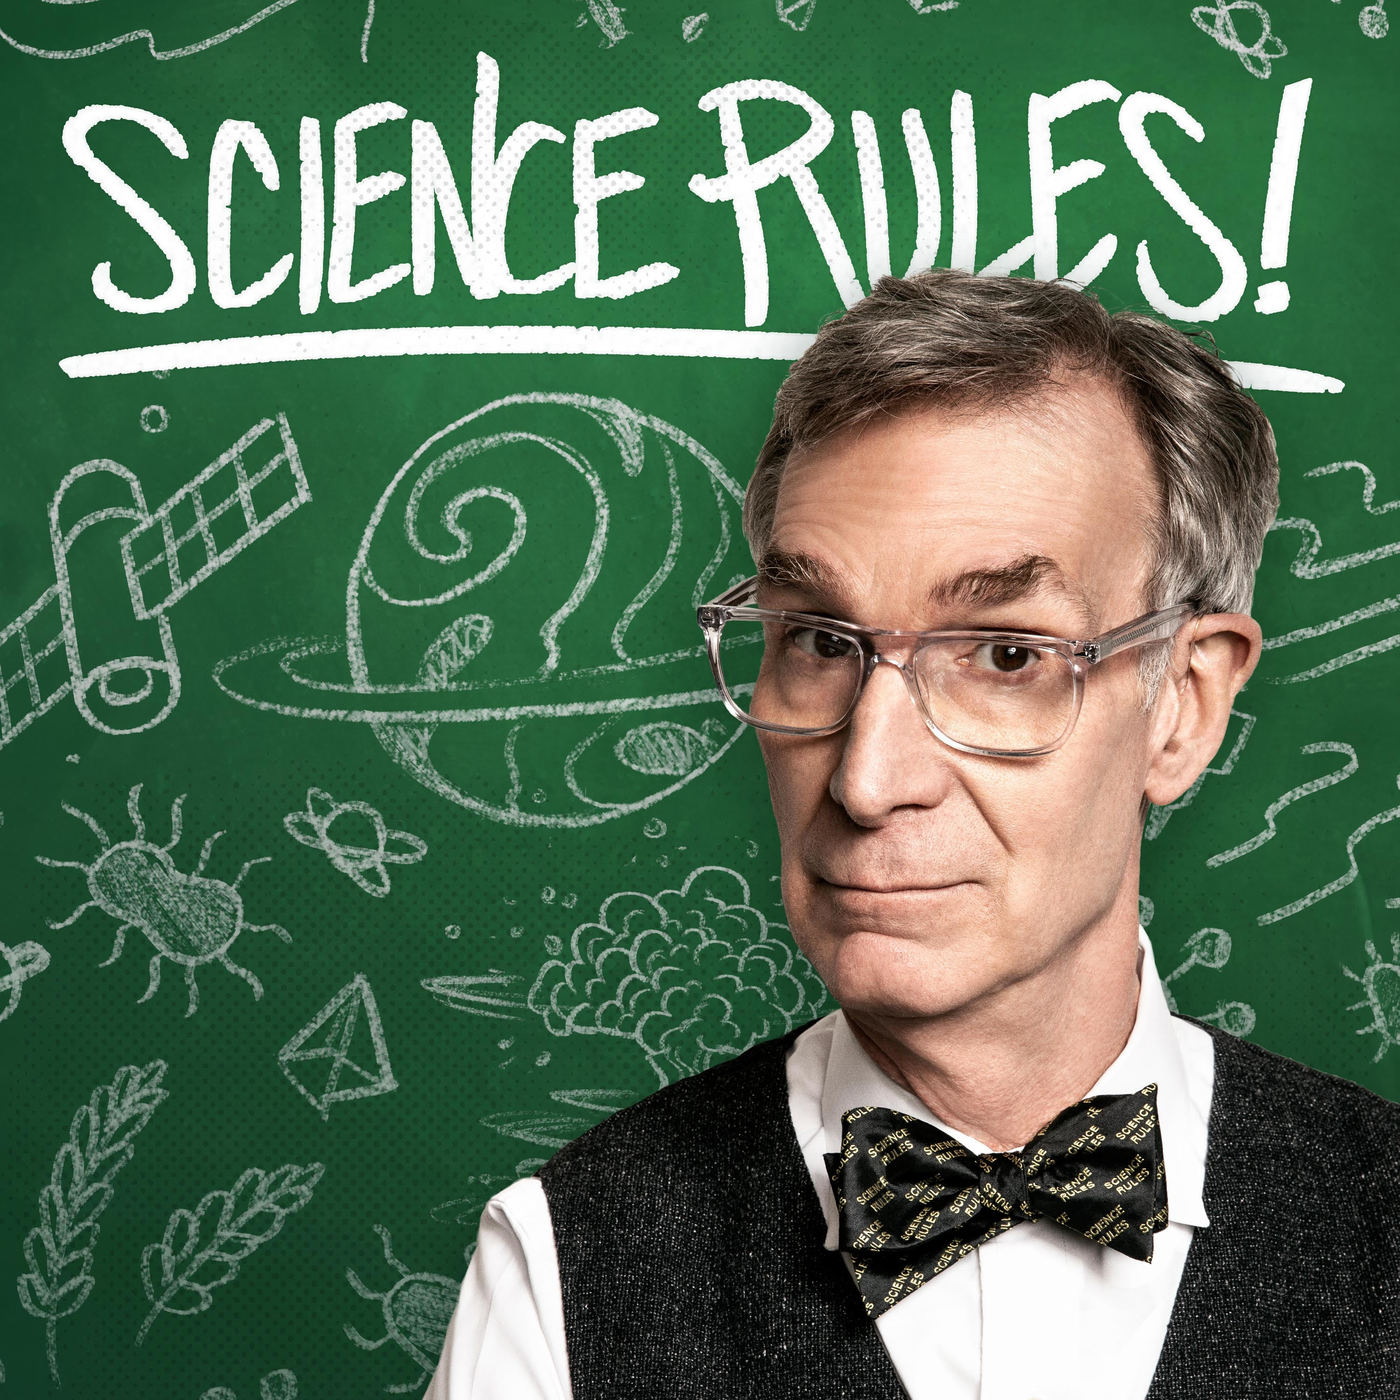 Science Rules! With Bill Nye podcast logo